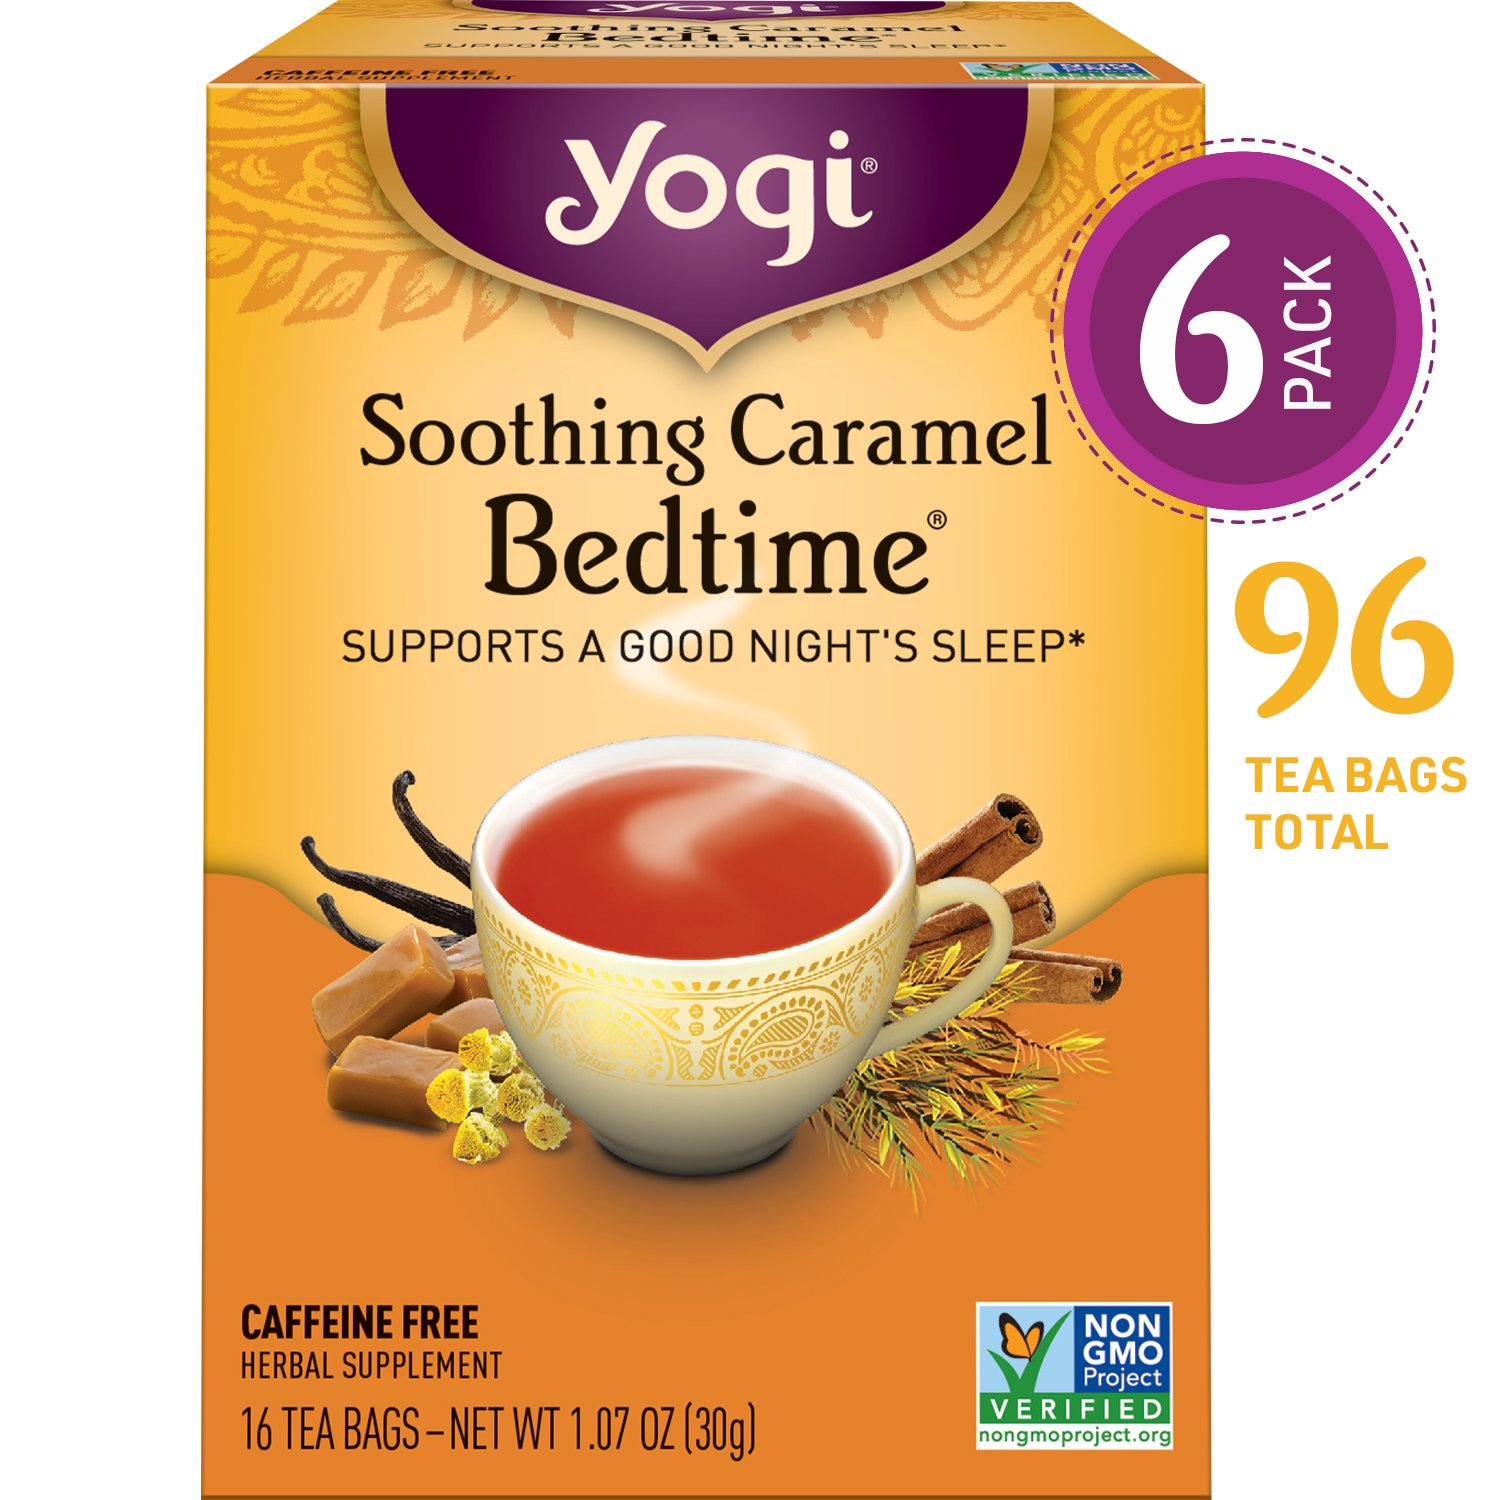 Yogi Tea - Soothing Caramel Bedtime - Supports a Good Night's Sleep - 6 Pack, 96 Tea Bags Total